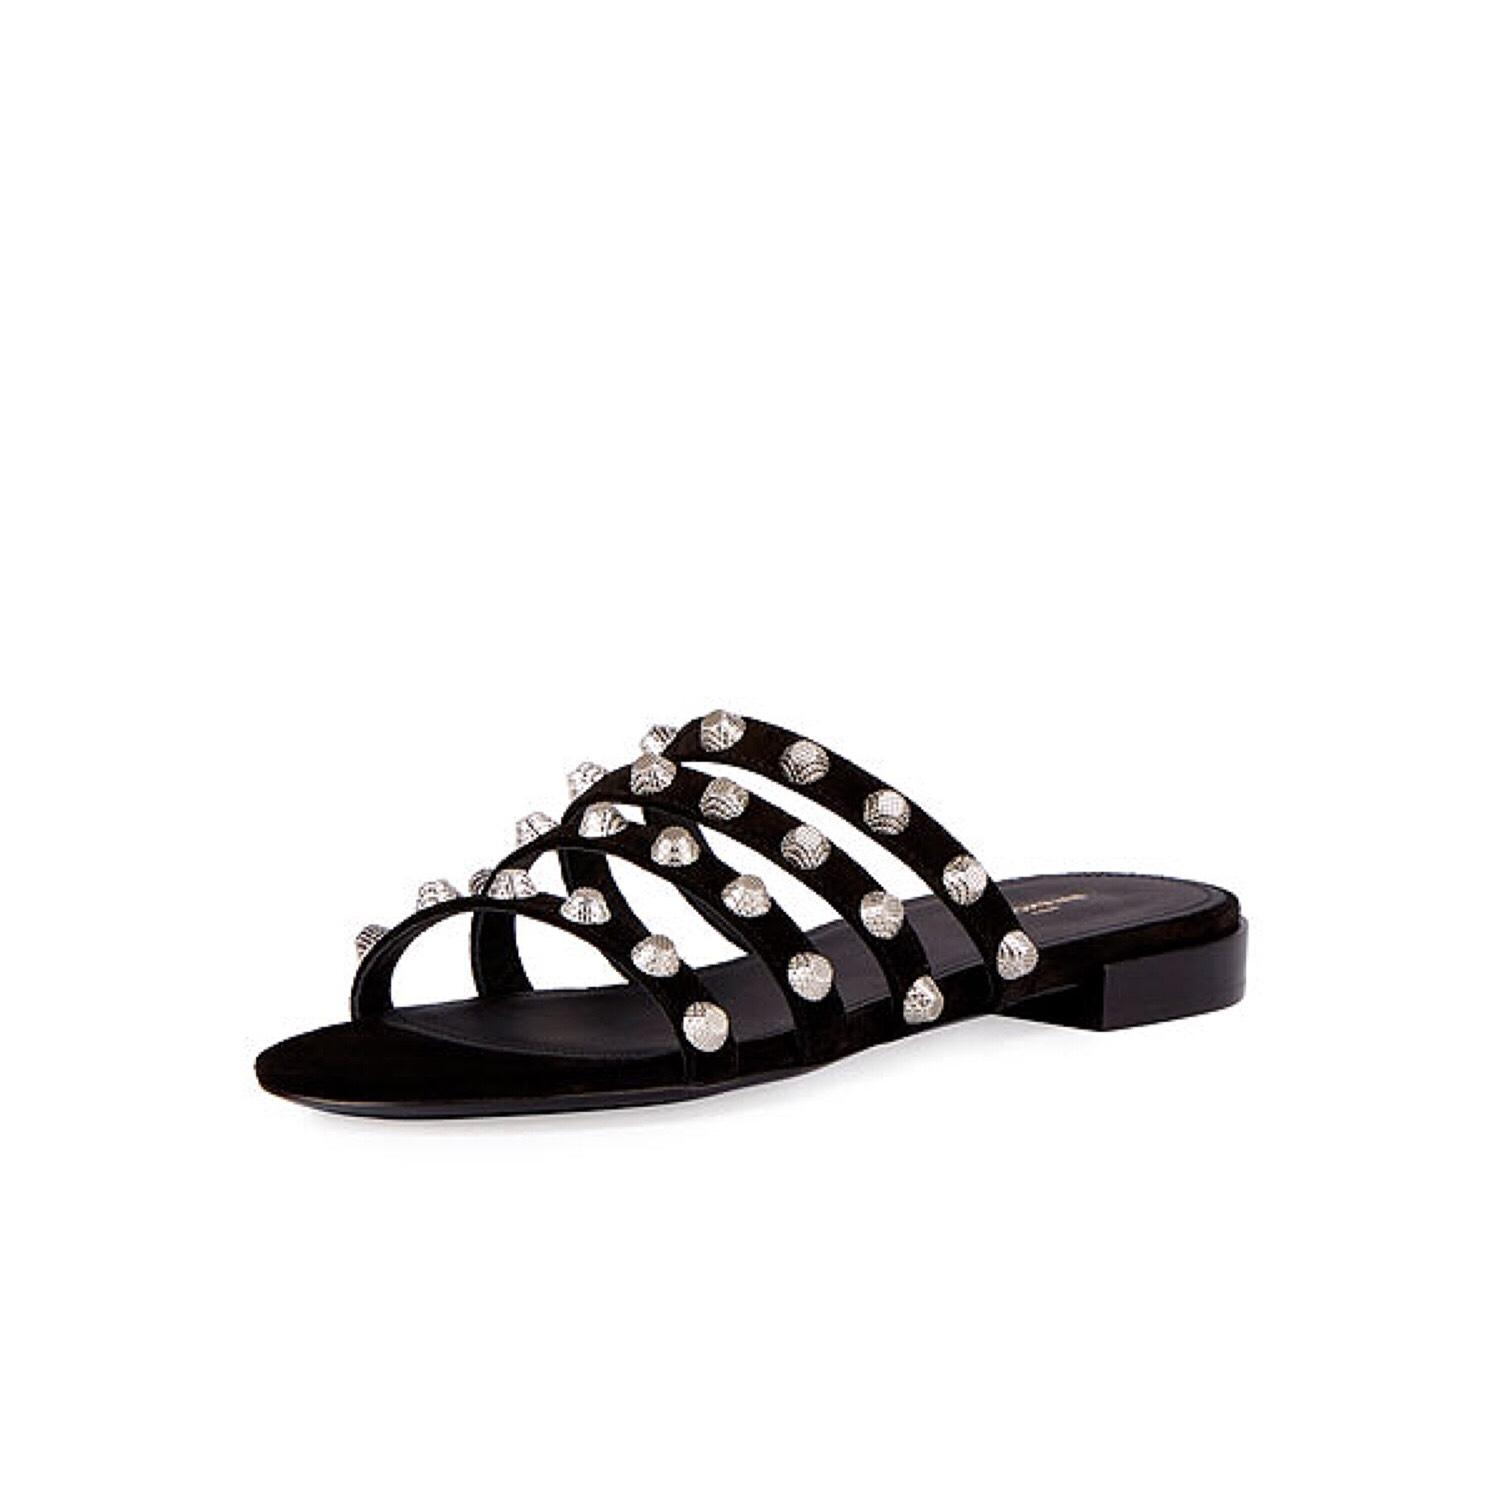 footlocker finishline Balenciaga Suede Slide Sandals outlet where can you find V6nsLTZ